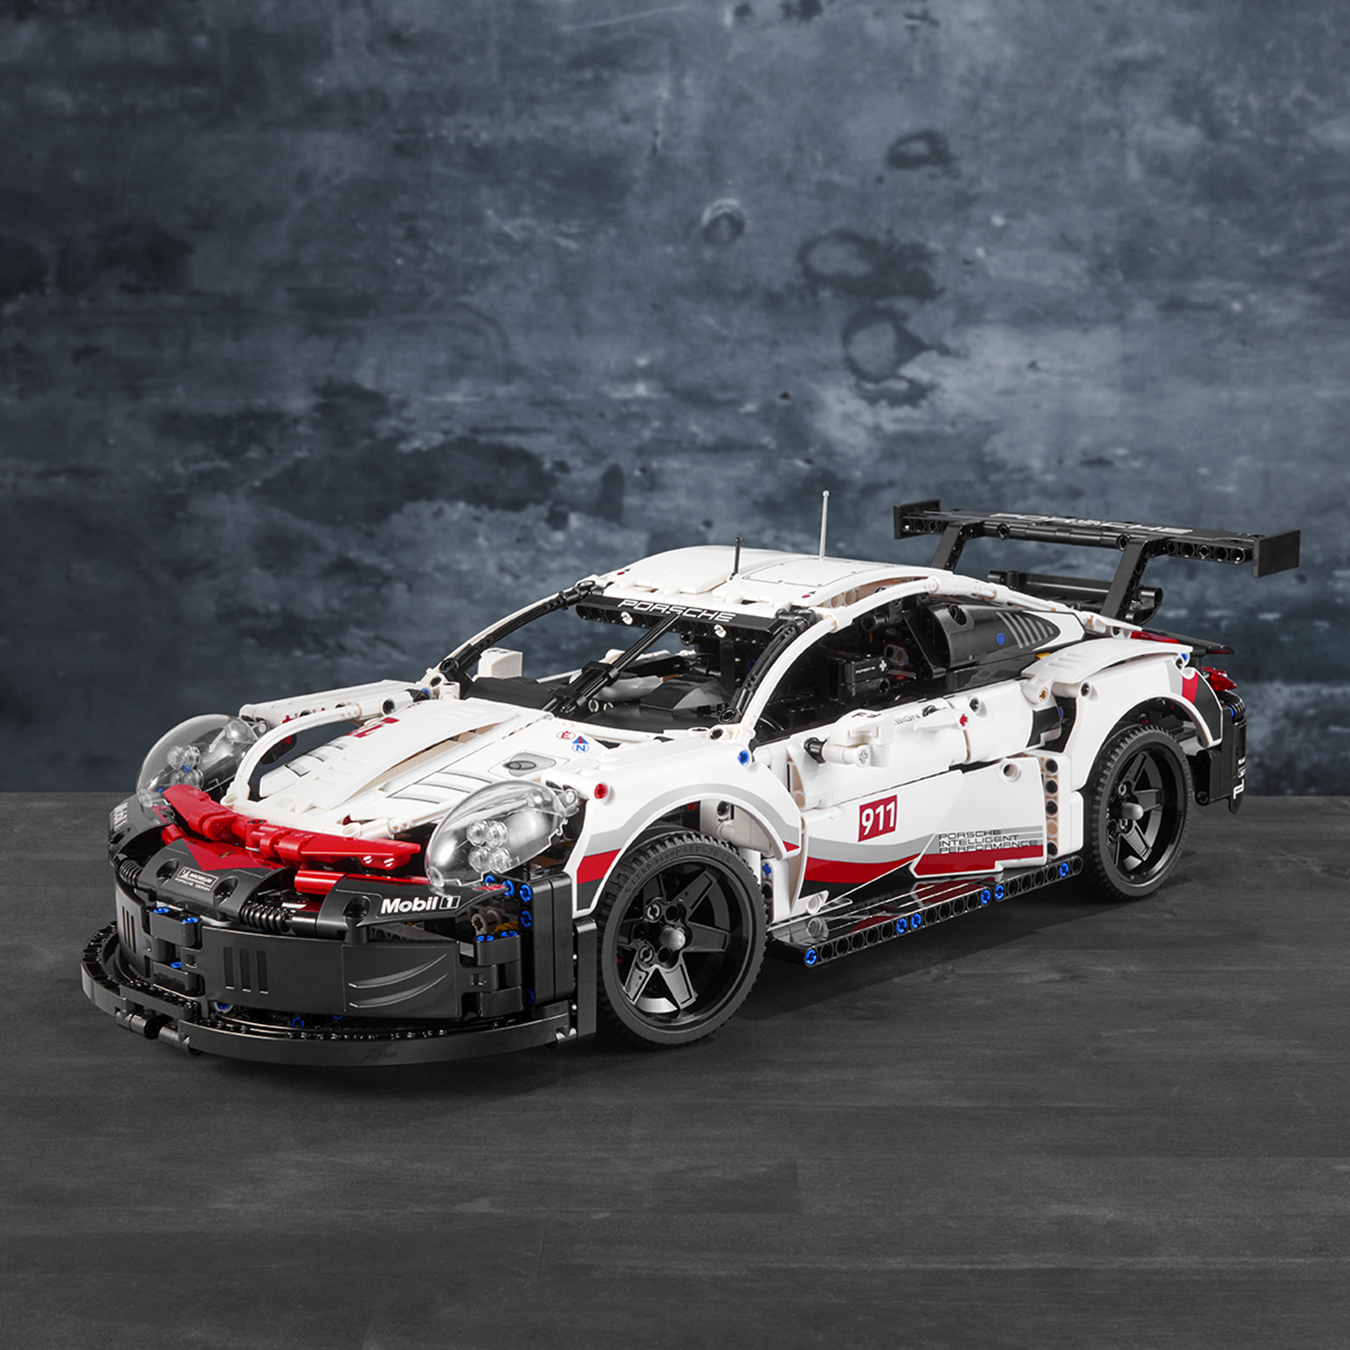 42096 lego technic porsche 911 rsr 1580 pieces age 10 new release for 2019 ebay. Black Bedroom Furniture Sets. Home Design Ideas